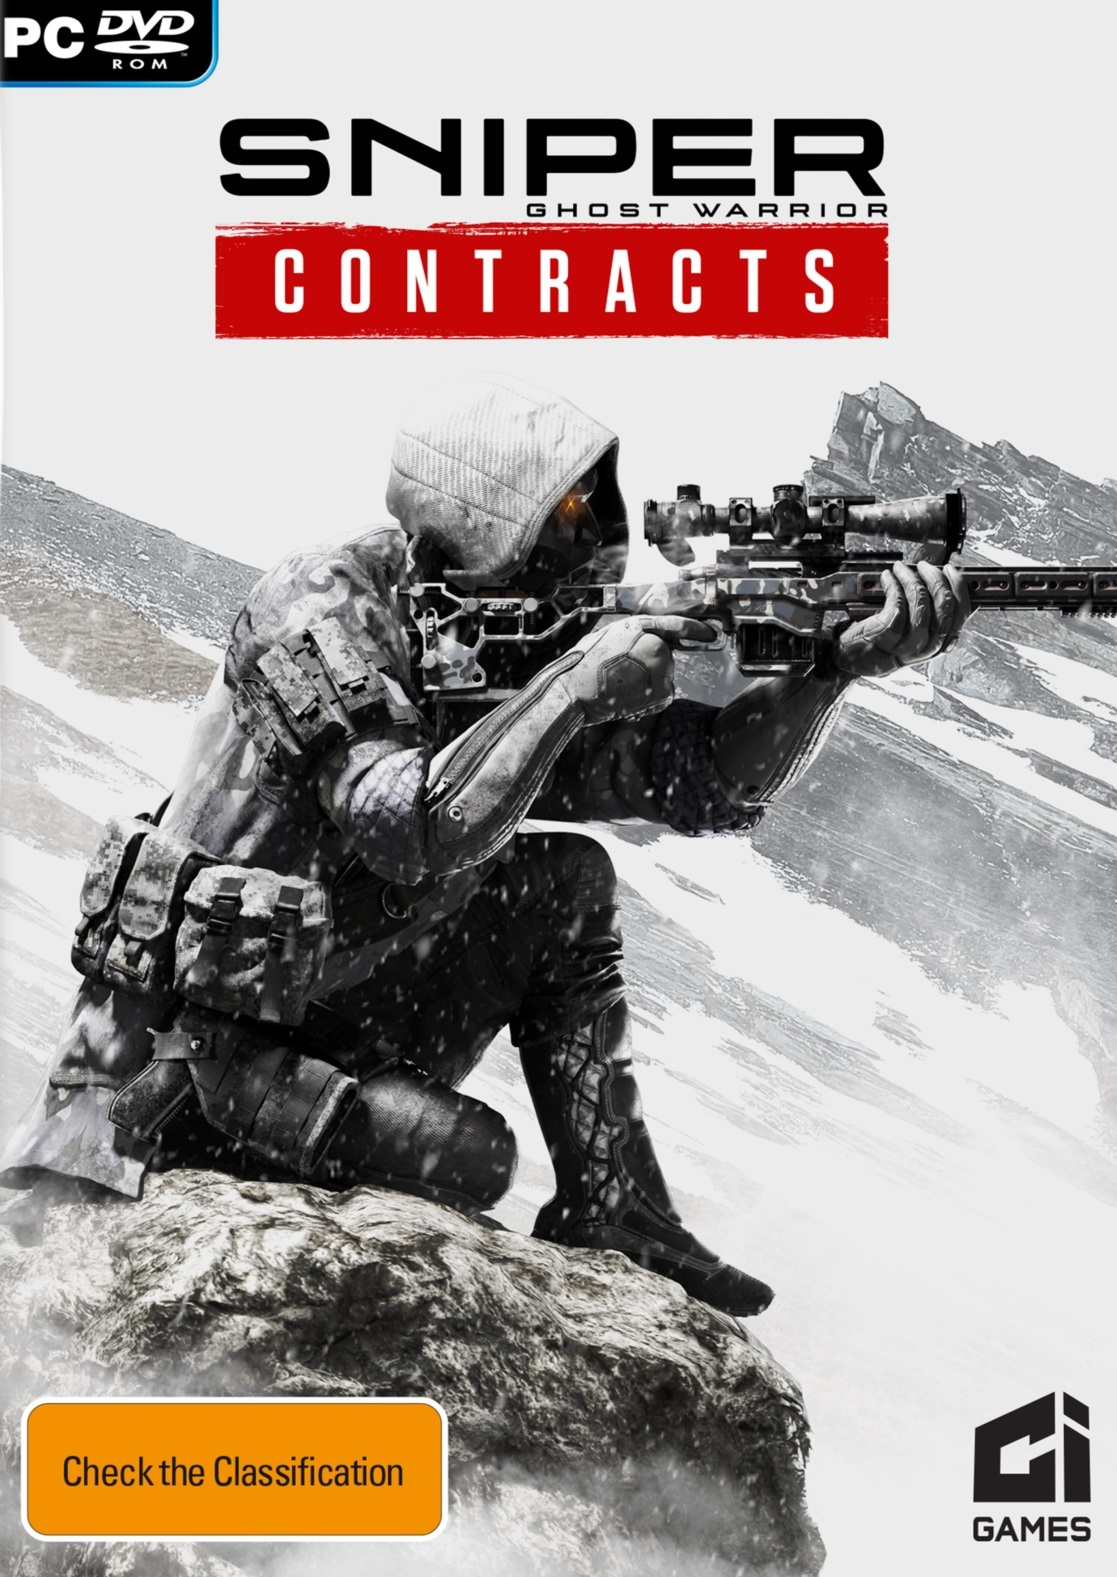 Sniper: Ghost Warrior Contracts for PC image